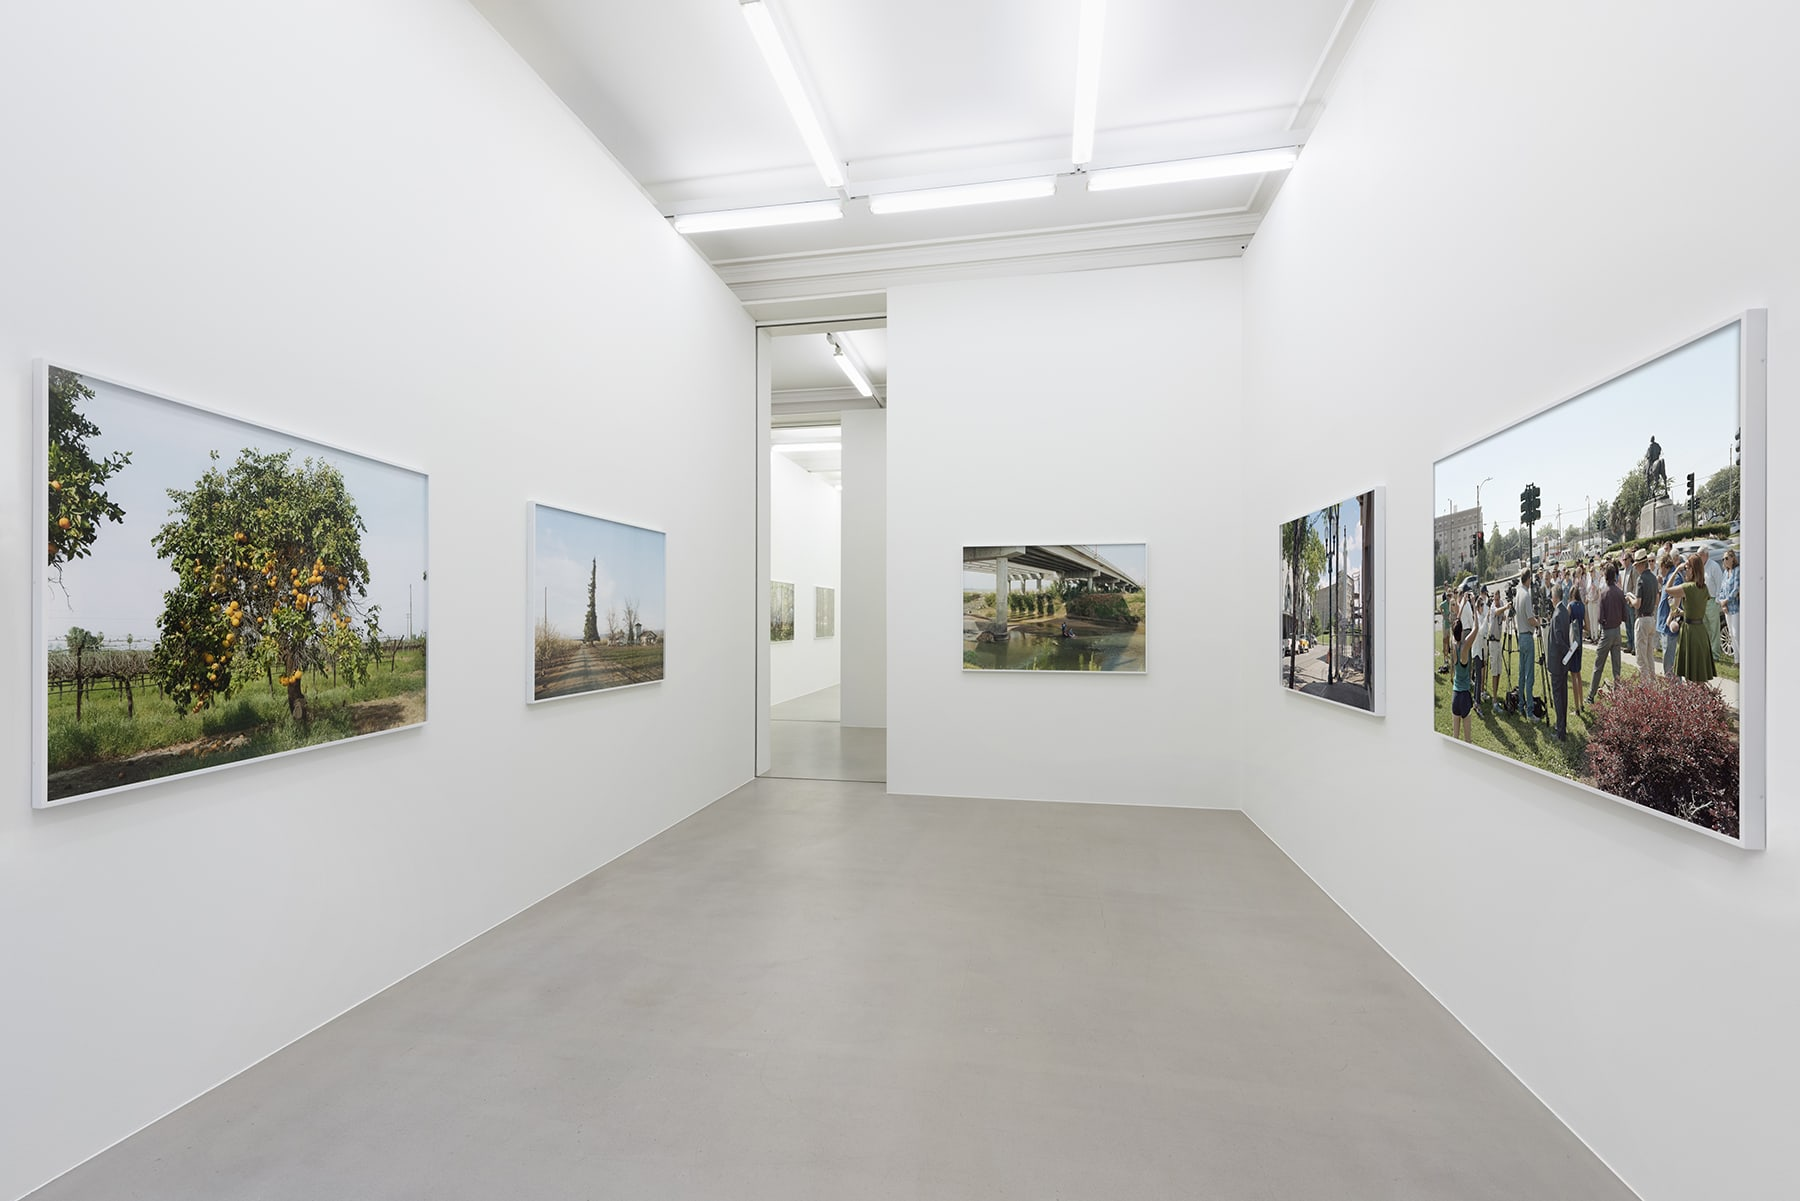 """Installation view of """"Silent General"""" by An-My Le at MGG London"""